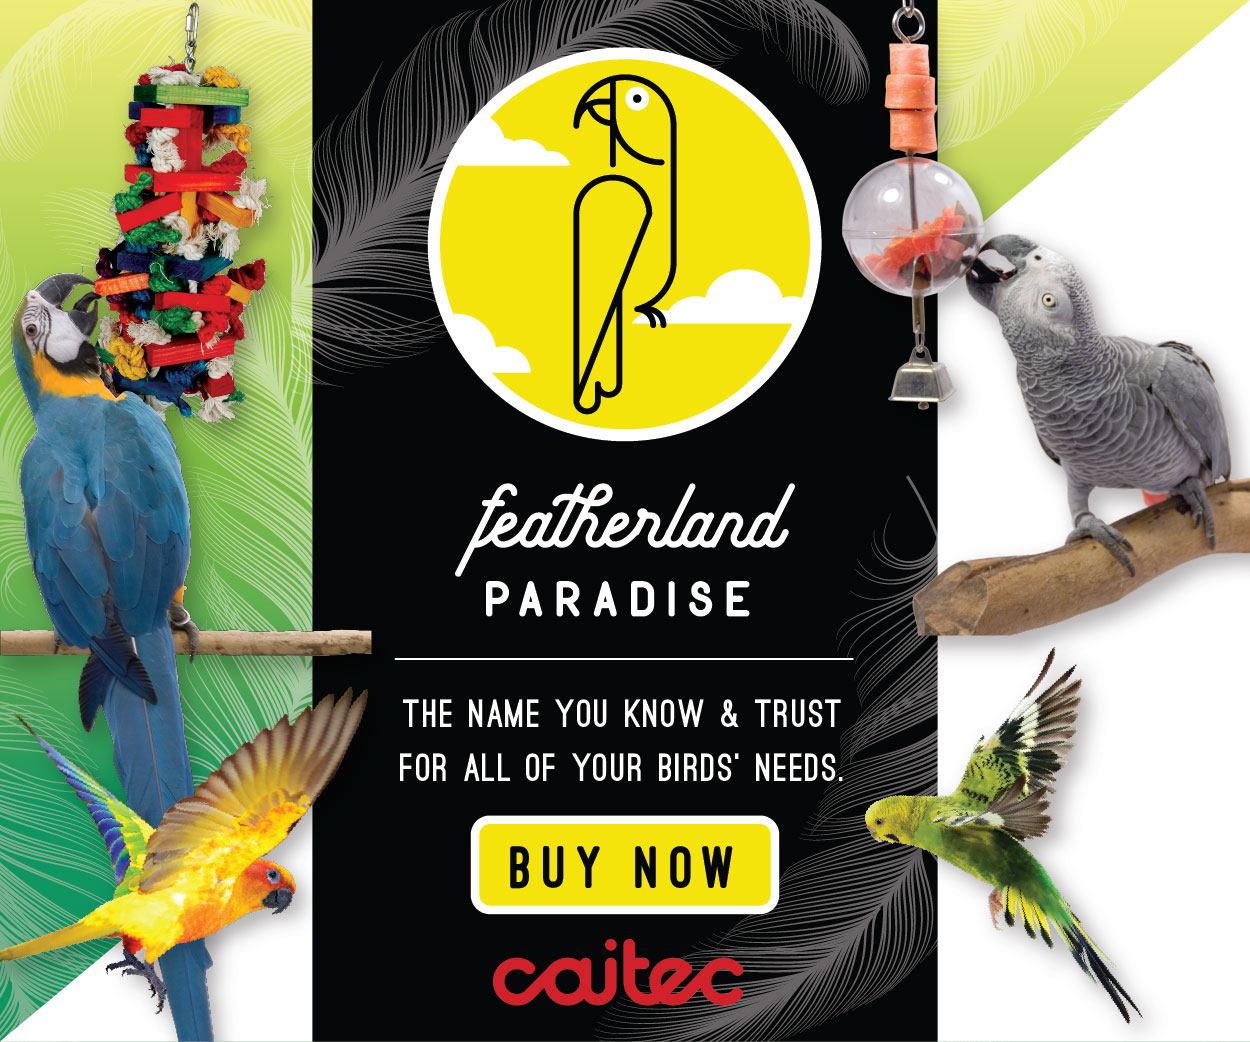 Featherland Paradise - The name you know & trust for all of your birds' needs.